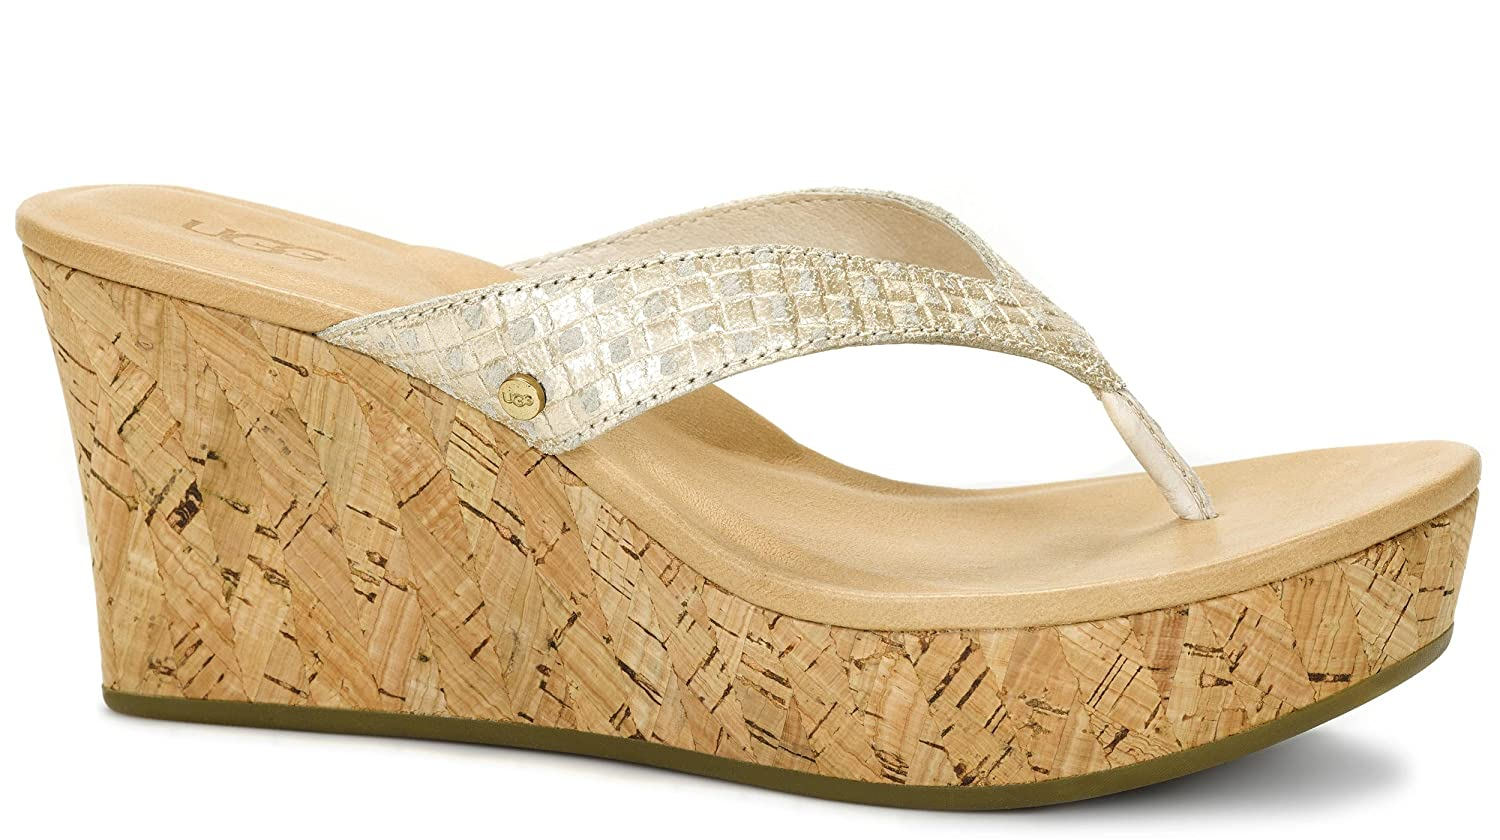 bd0753200e8 UGG Women's Natassia Metallic Basket Soft Gold Leather Sandal 5.5 B ...